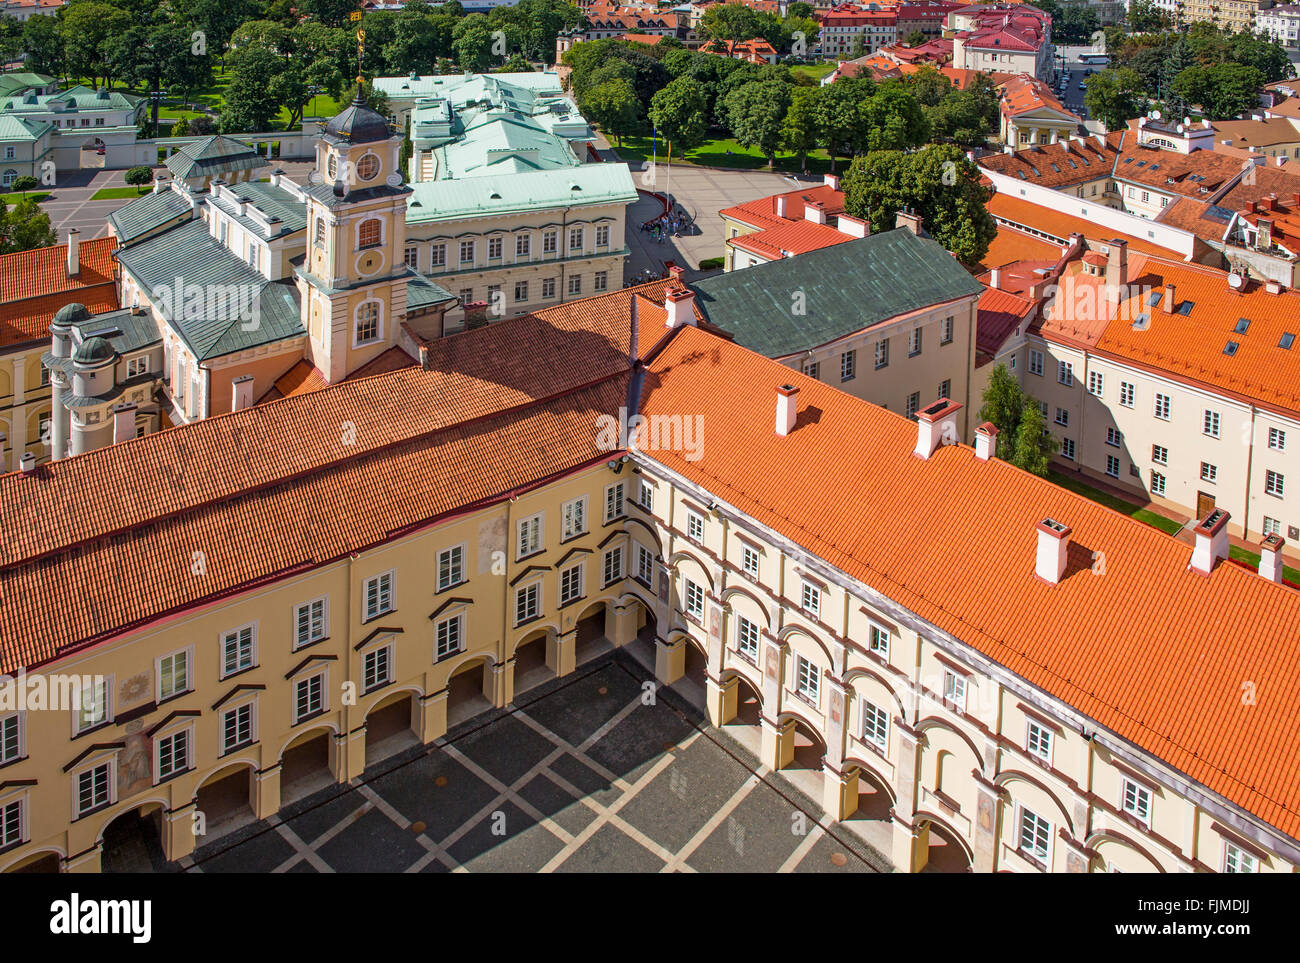 geography / travel, Lithuania, Vilnius, view from the Church of St. John onto the university, Sarkos Court, Additional - Stock Image